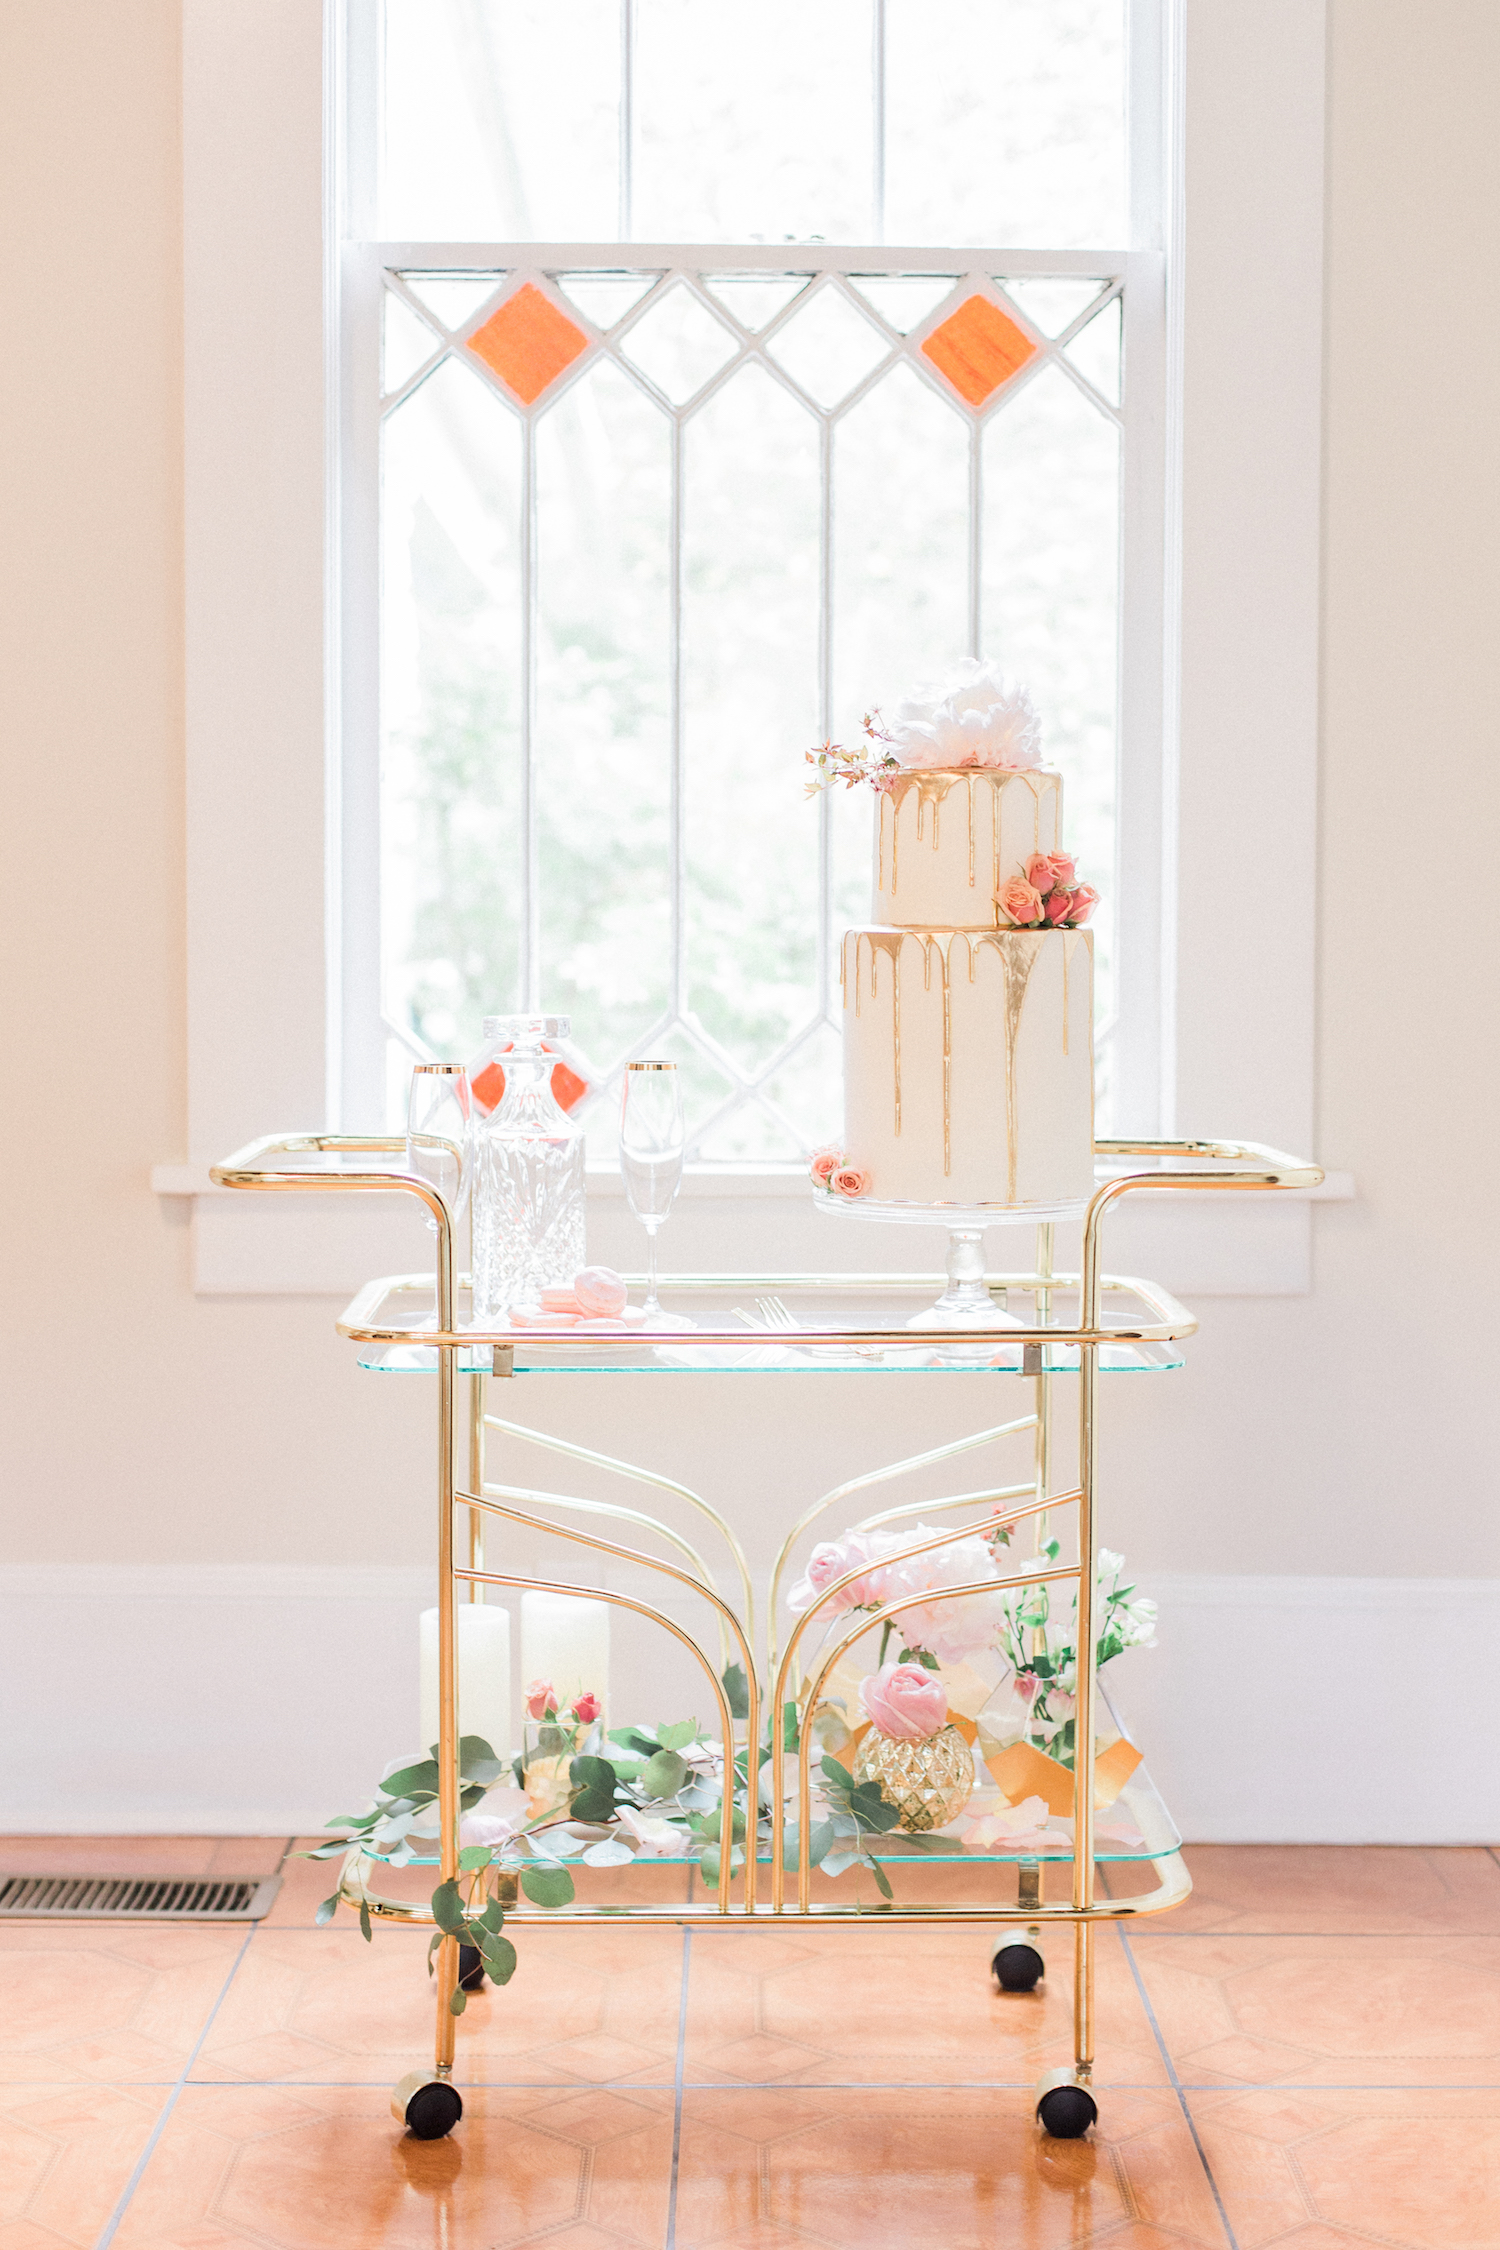 Gold dripped wedding cake with floral accents on a gold antique bar cart.